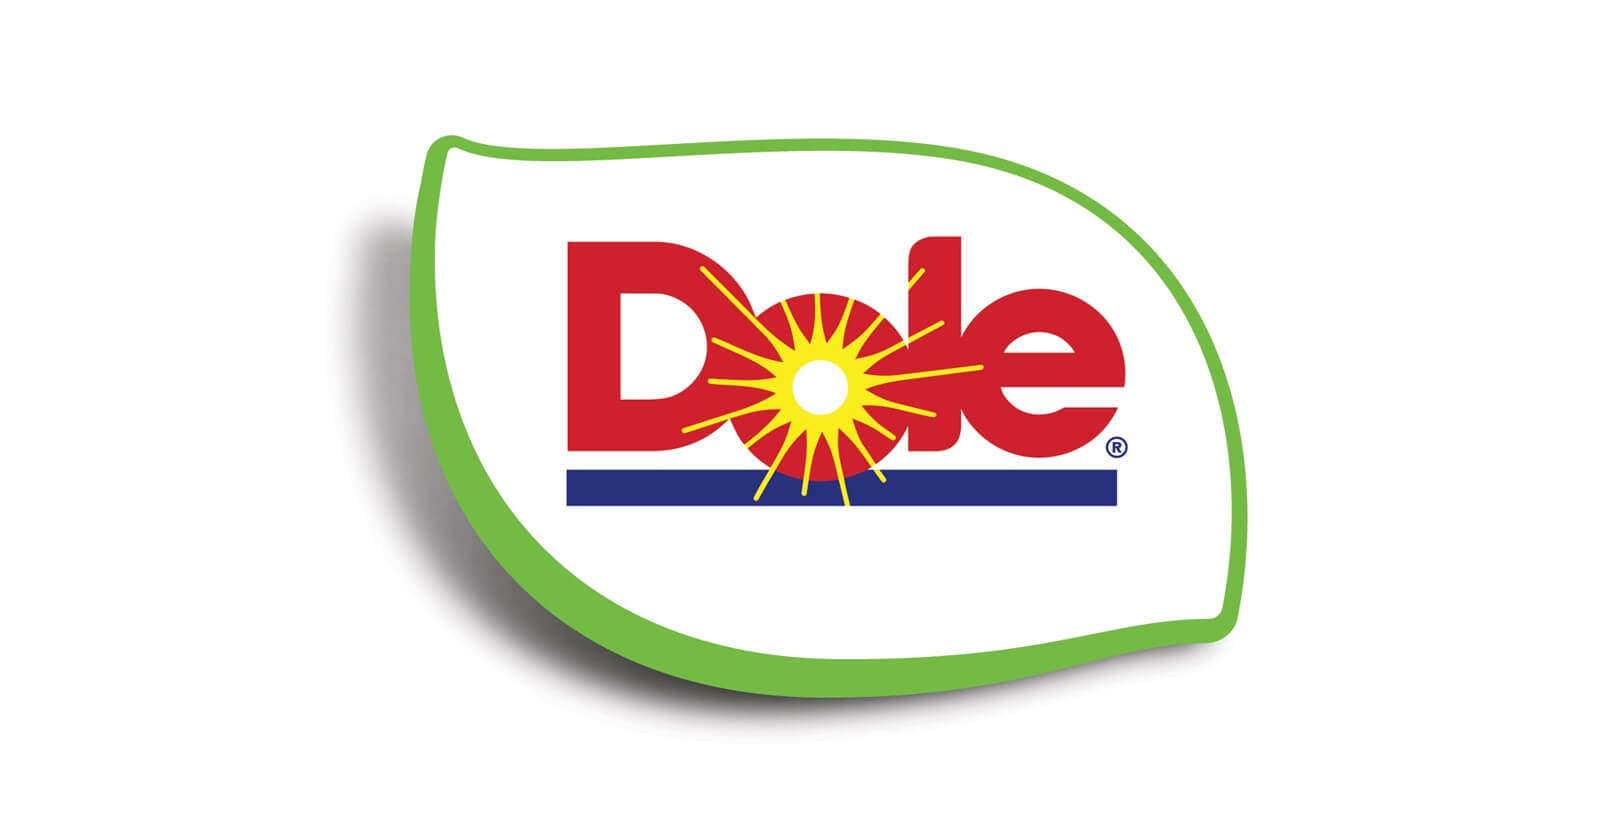 Dole Food Company Partners With Beanstalk To Extend Brand Into Meaningful New Product Offerings image